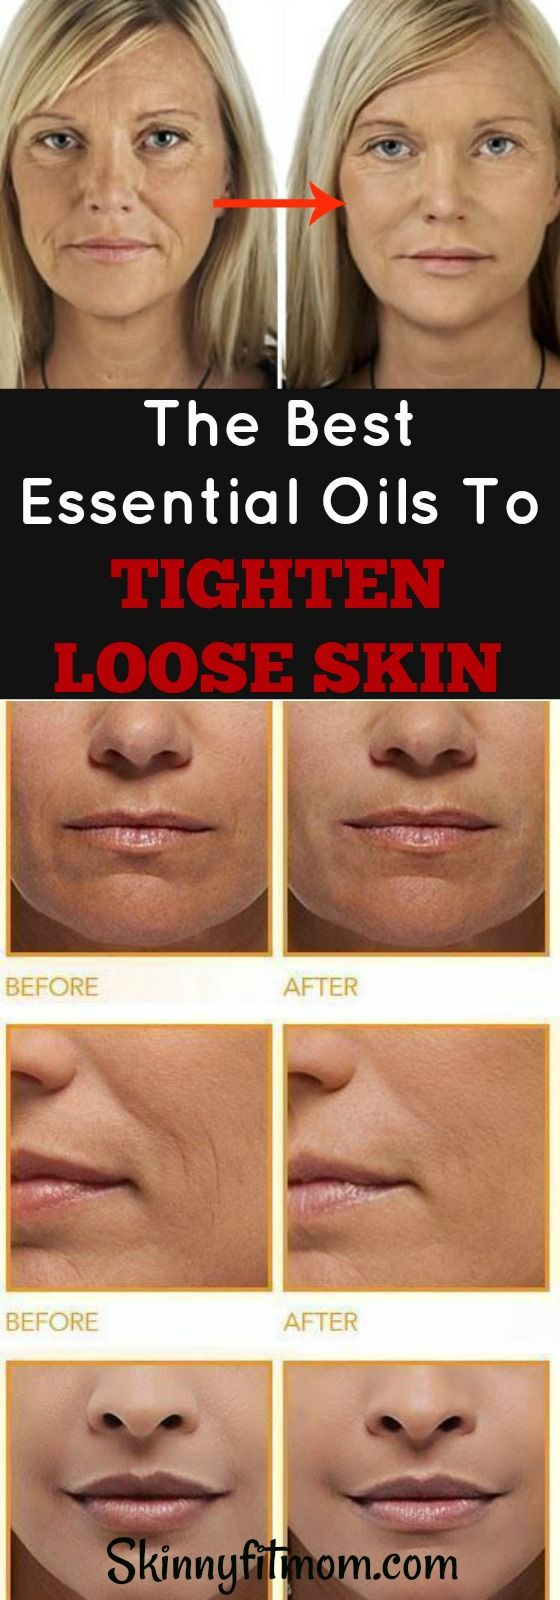 Get Rid of wrinkles and loose skin. Make your skin look years younger with these magic essential oils. #skin #tighten